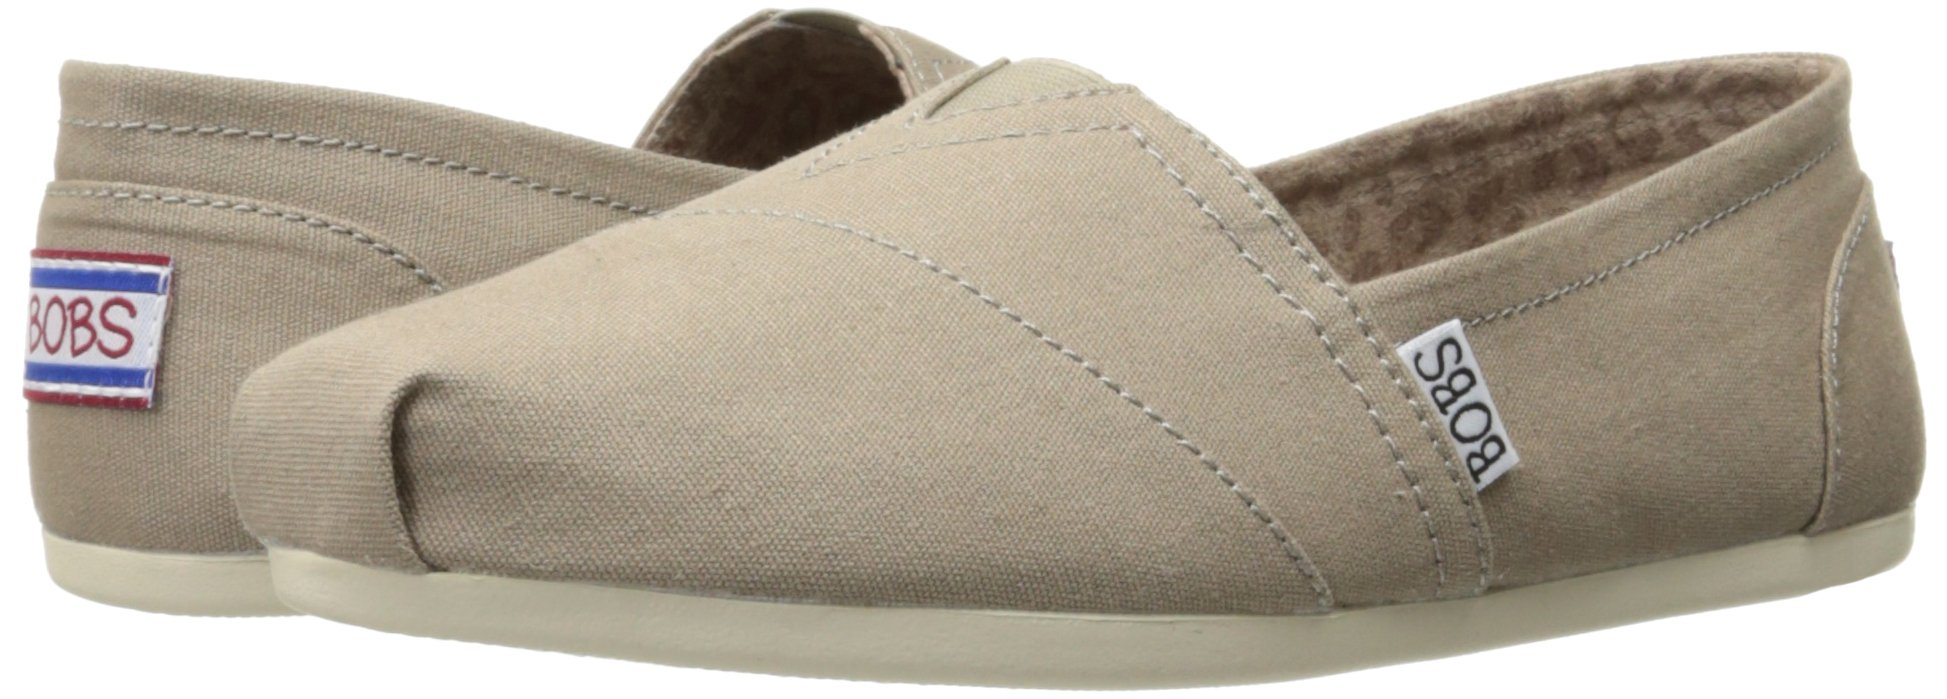 Skechers BOBS Women's Plush-Peace and Love Flat, Taupe, 8.5 W US by Skechers (Image #6)